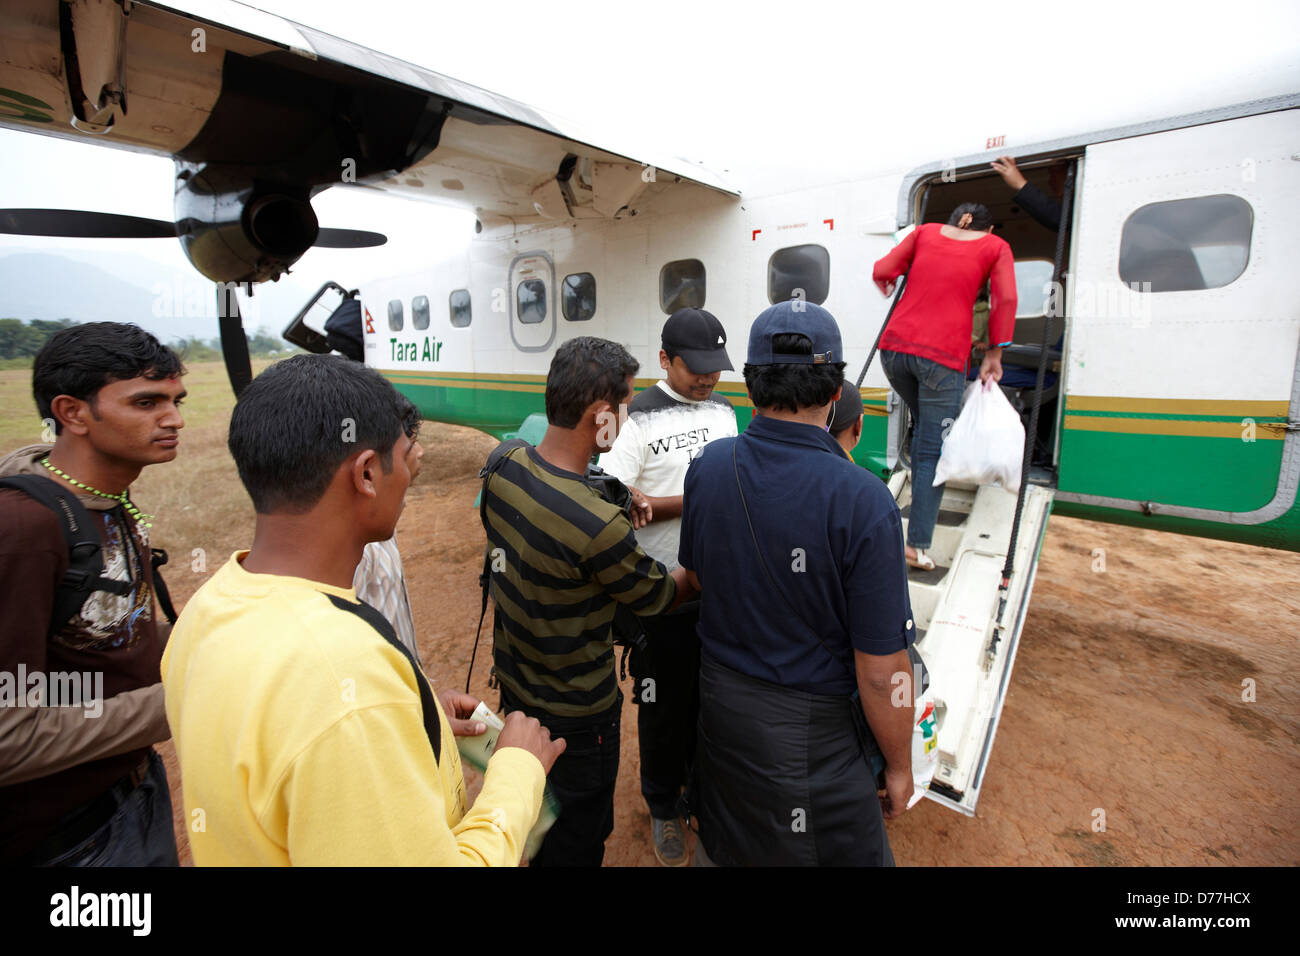 Nepal Tumlingtar passengers boarding into twin-turboprop aircraft at rural airstrip - Stock Image